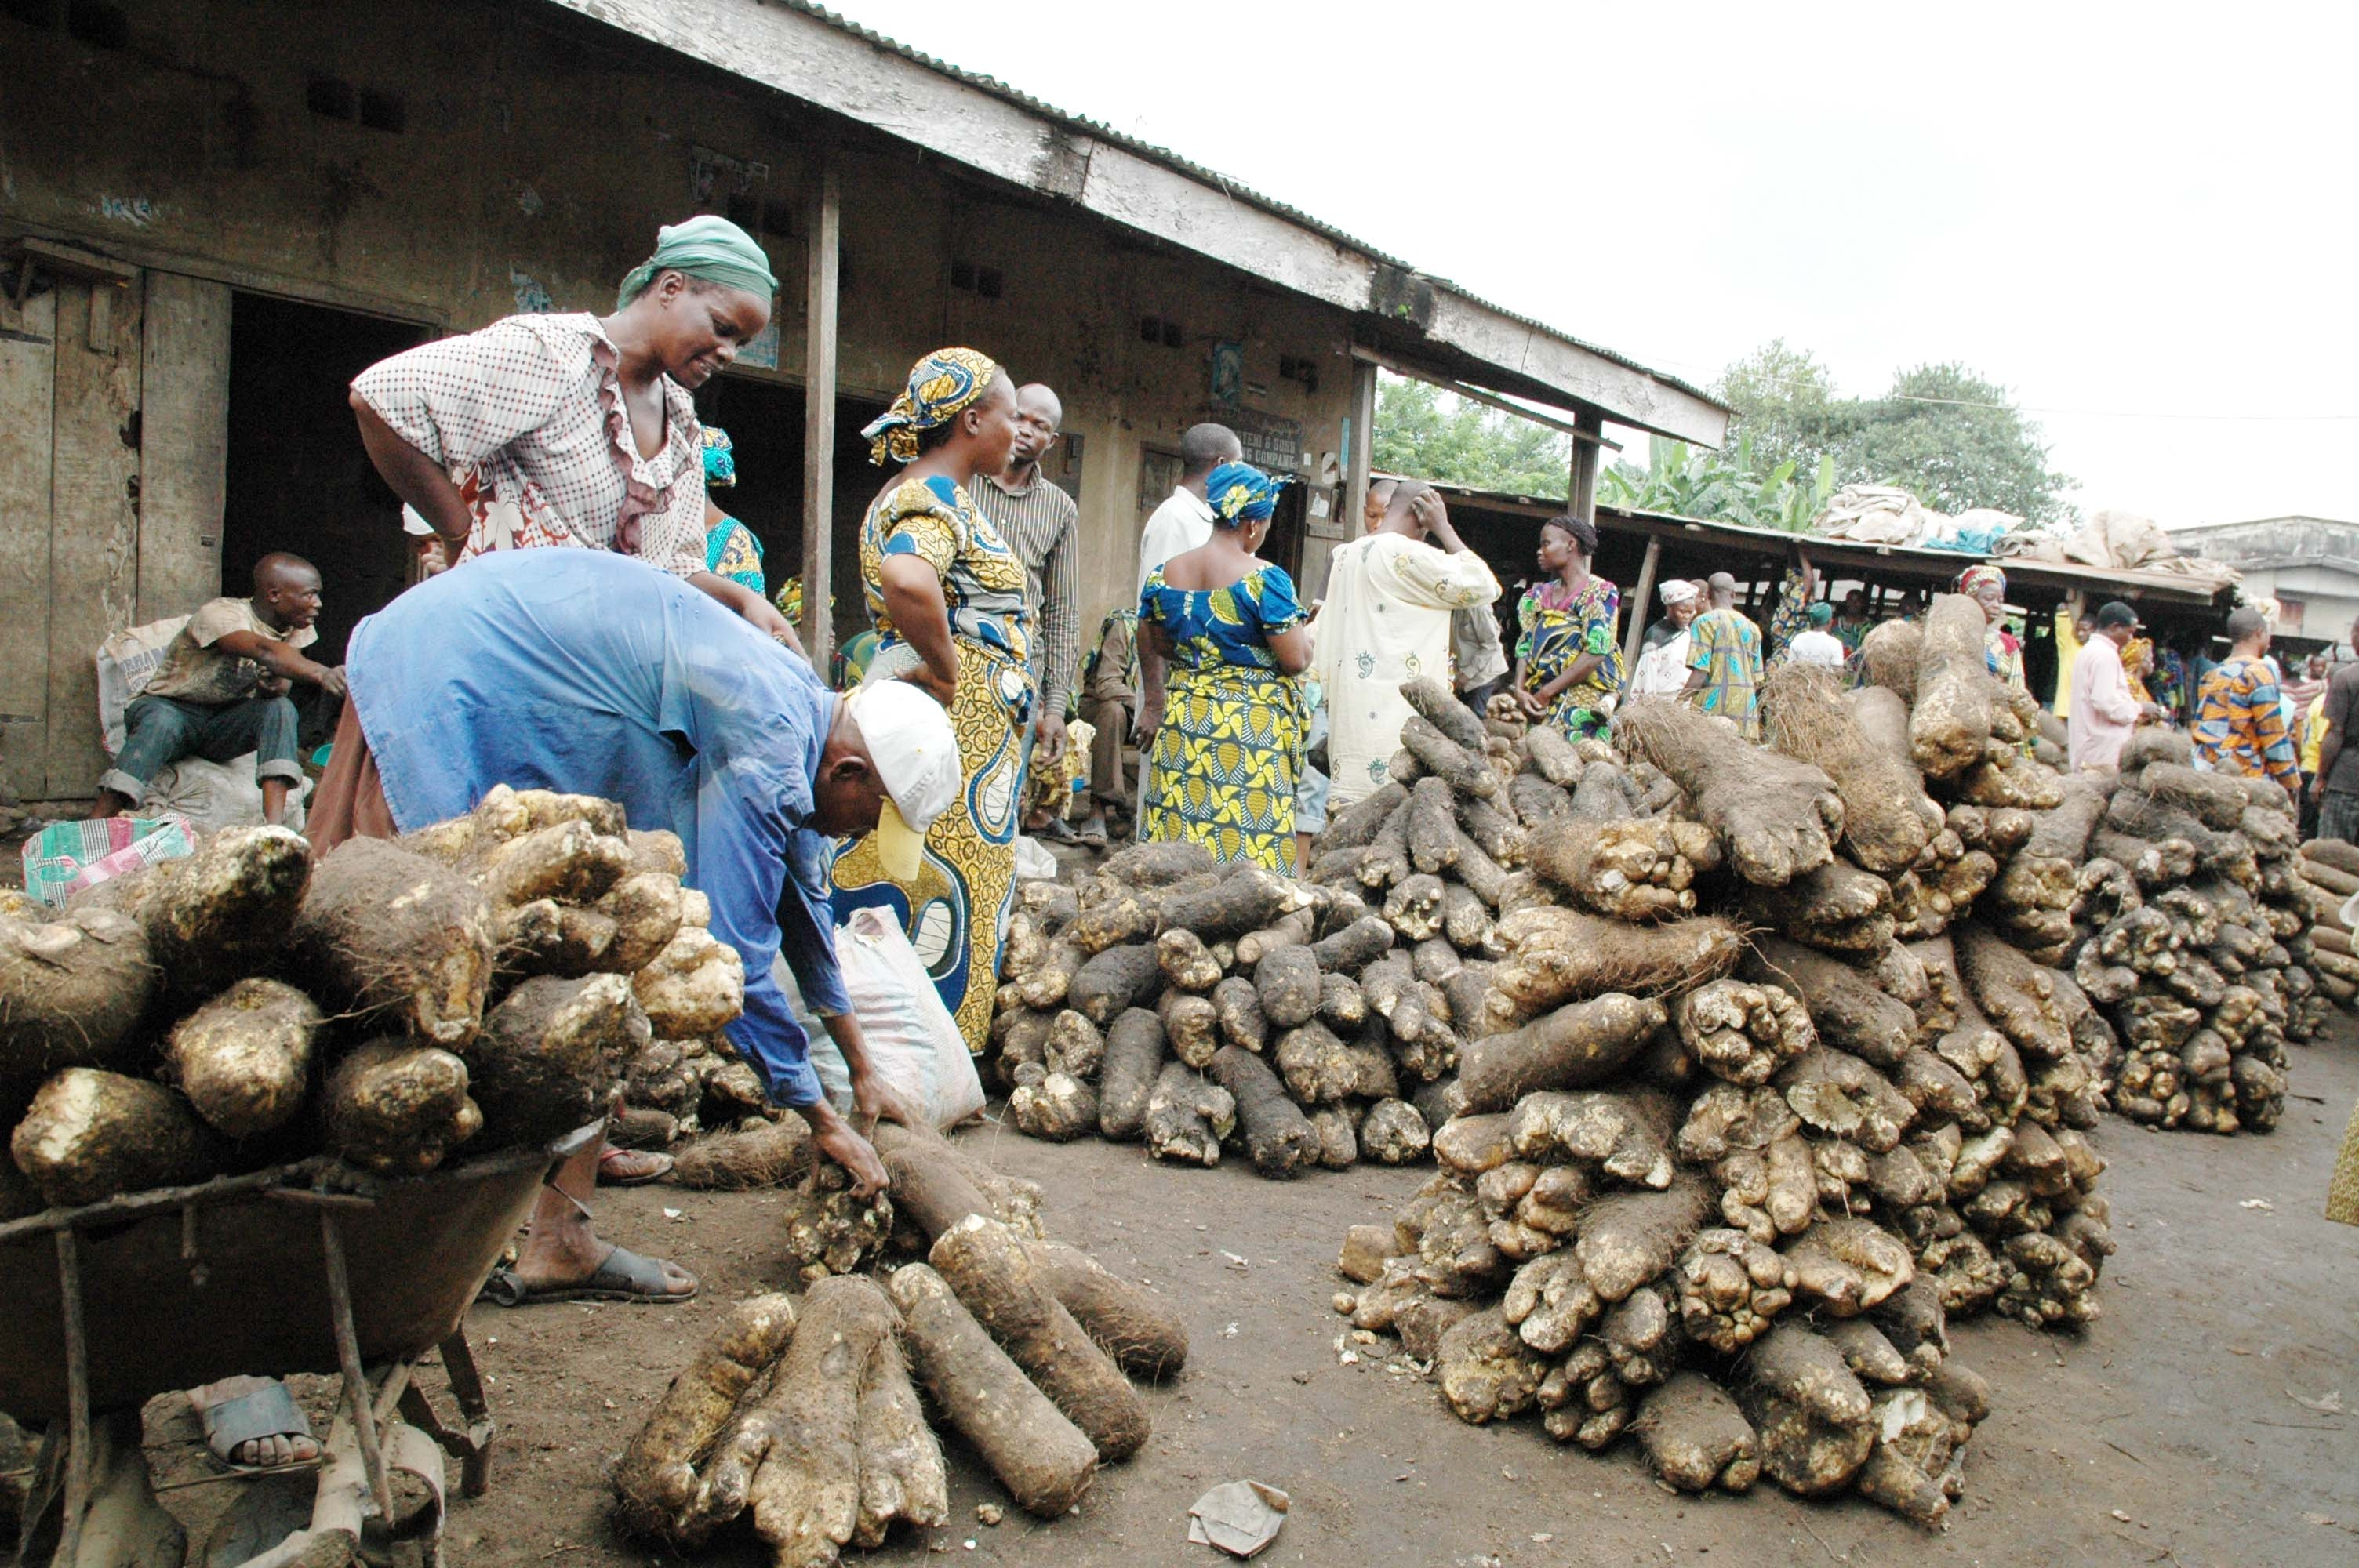 People buy manioc at the Bodija Yam market in Ibadan, Nigeria. Photo © News Agency of Nigeria/Xinhua Press/Corbis